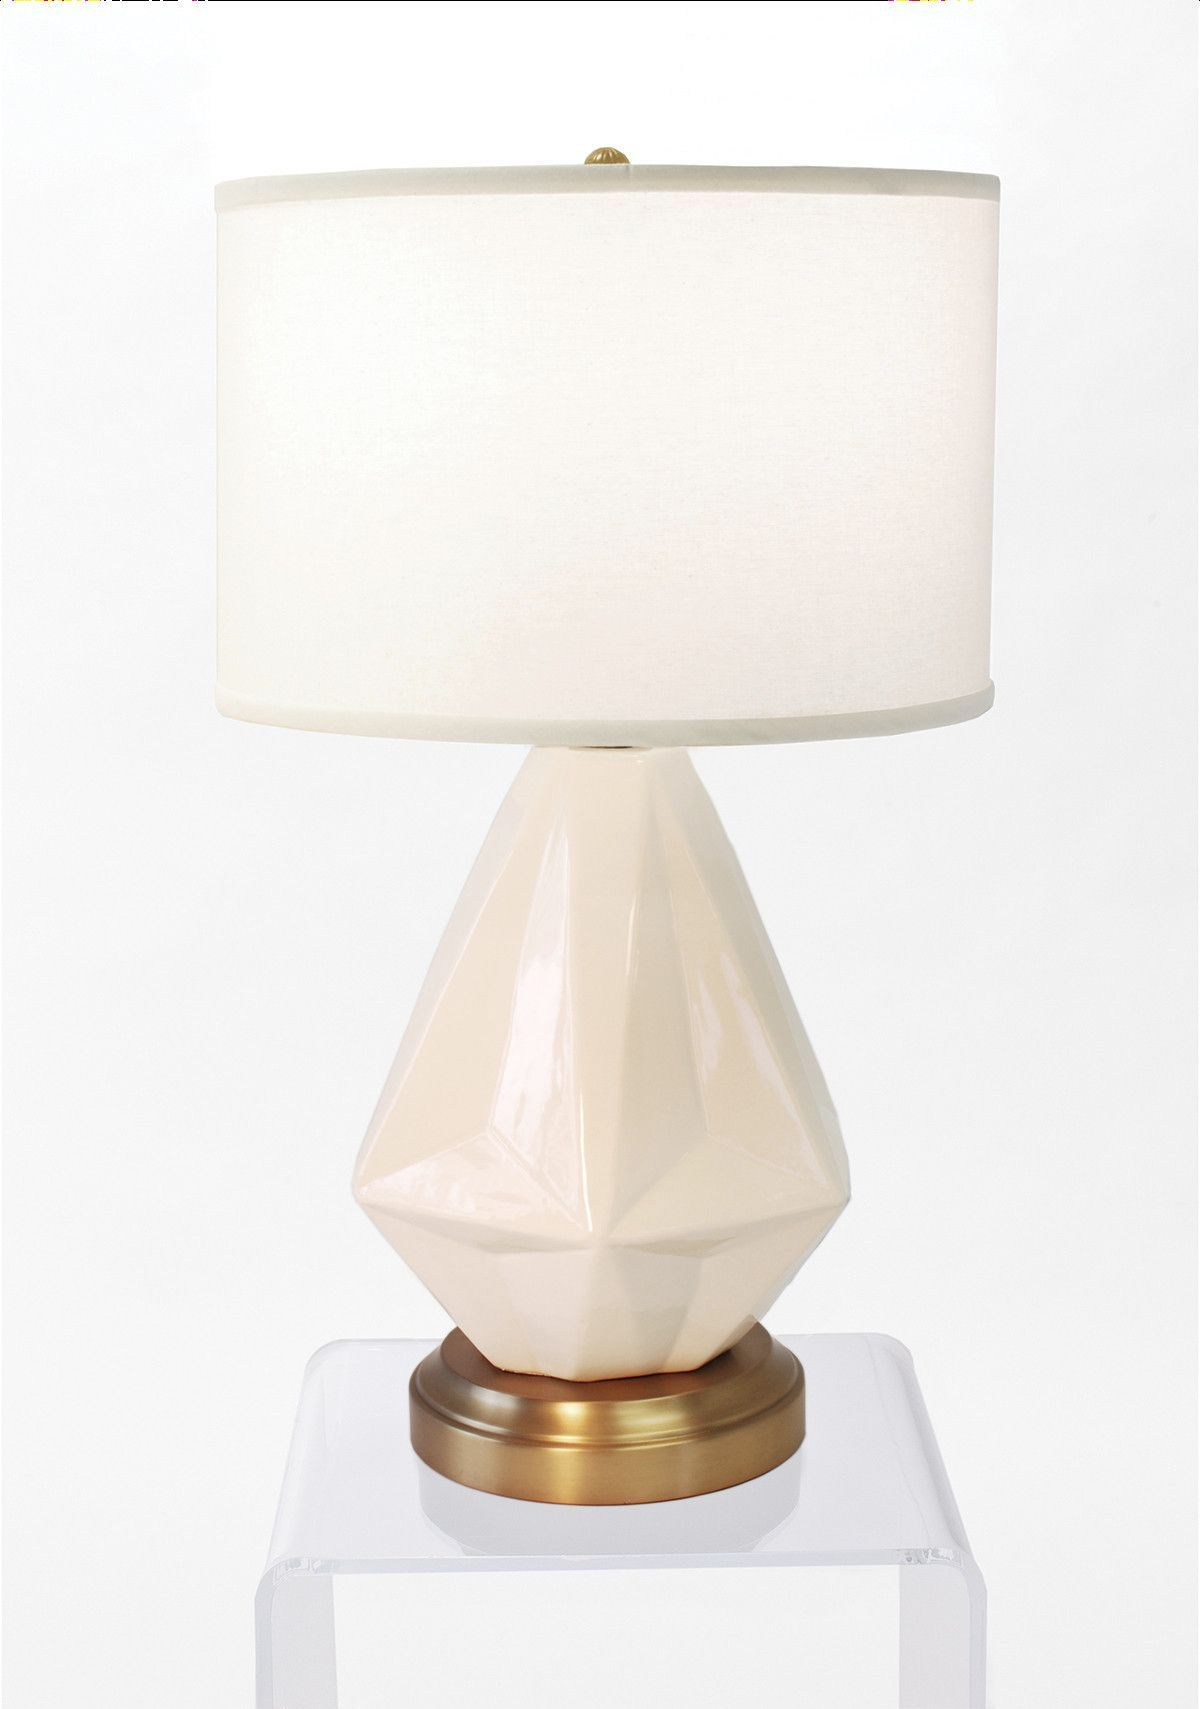 Prisma White on Brass Cordless Lamp Made in the USA